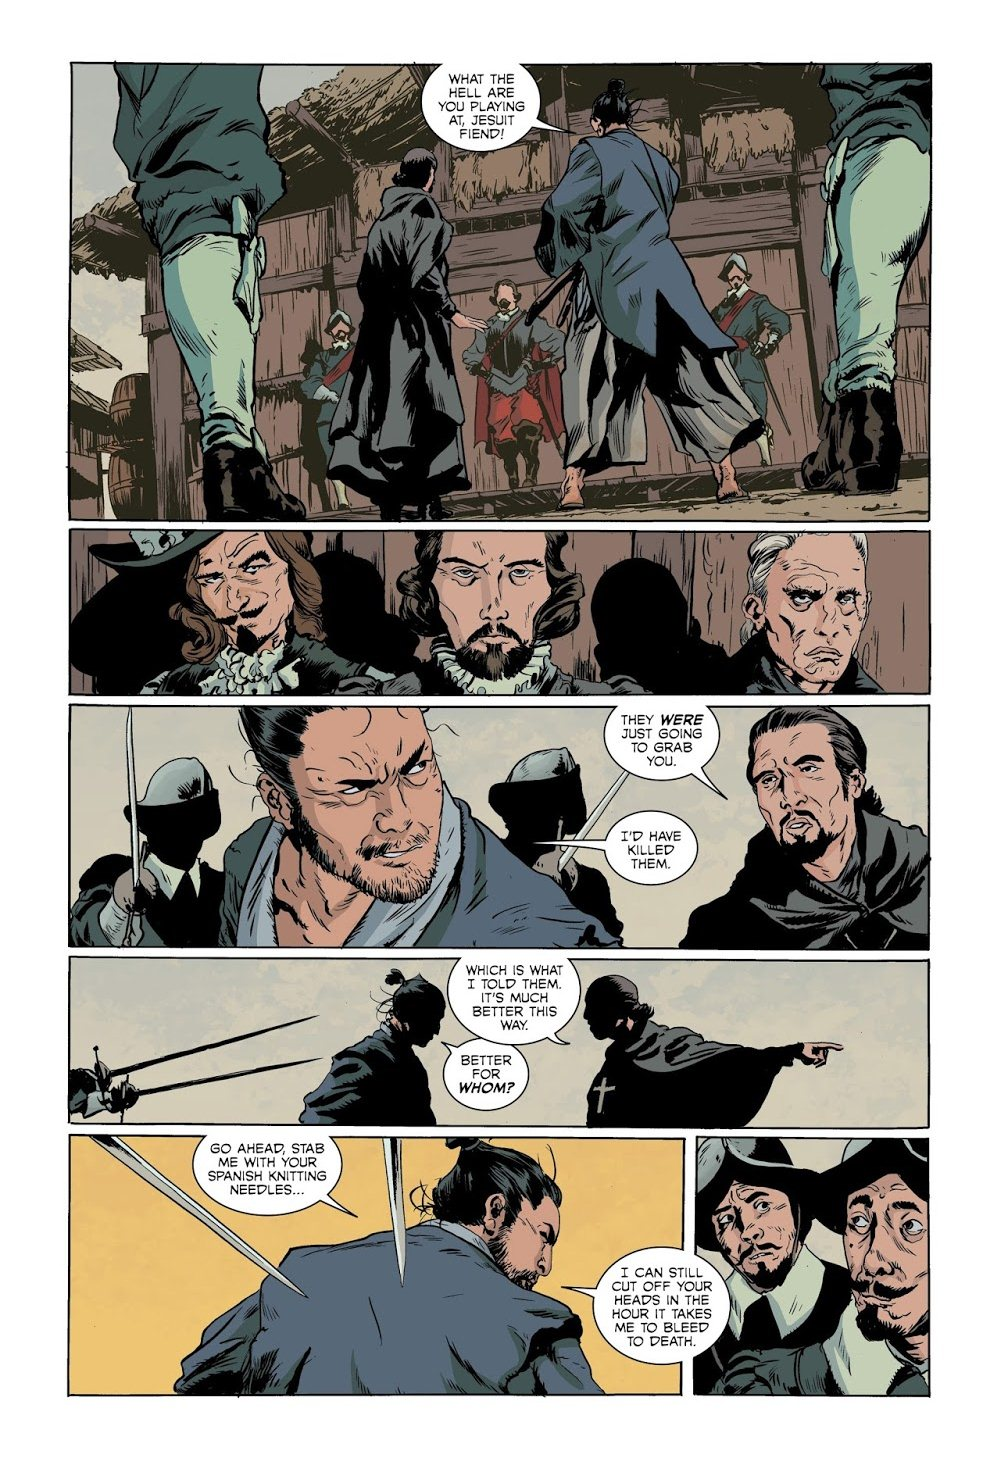 Cimarronin the Complete Graphic Novel review